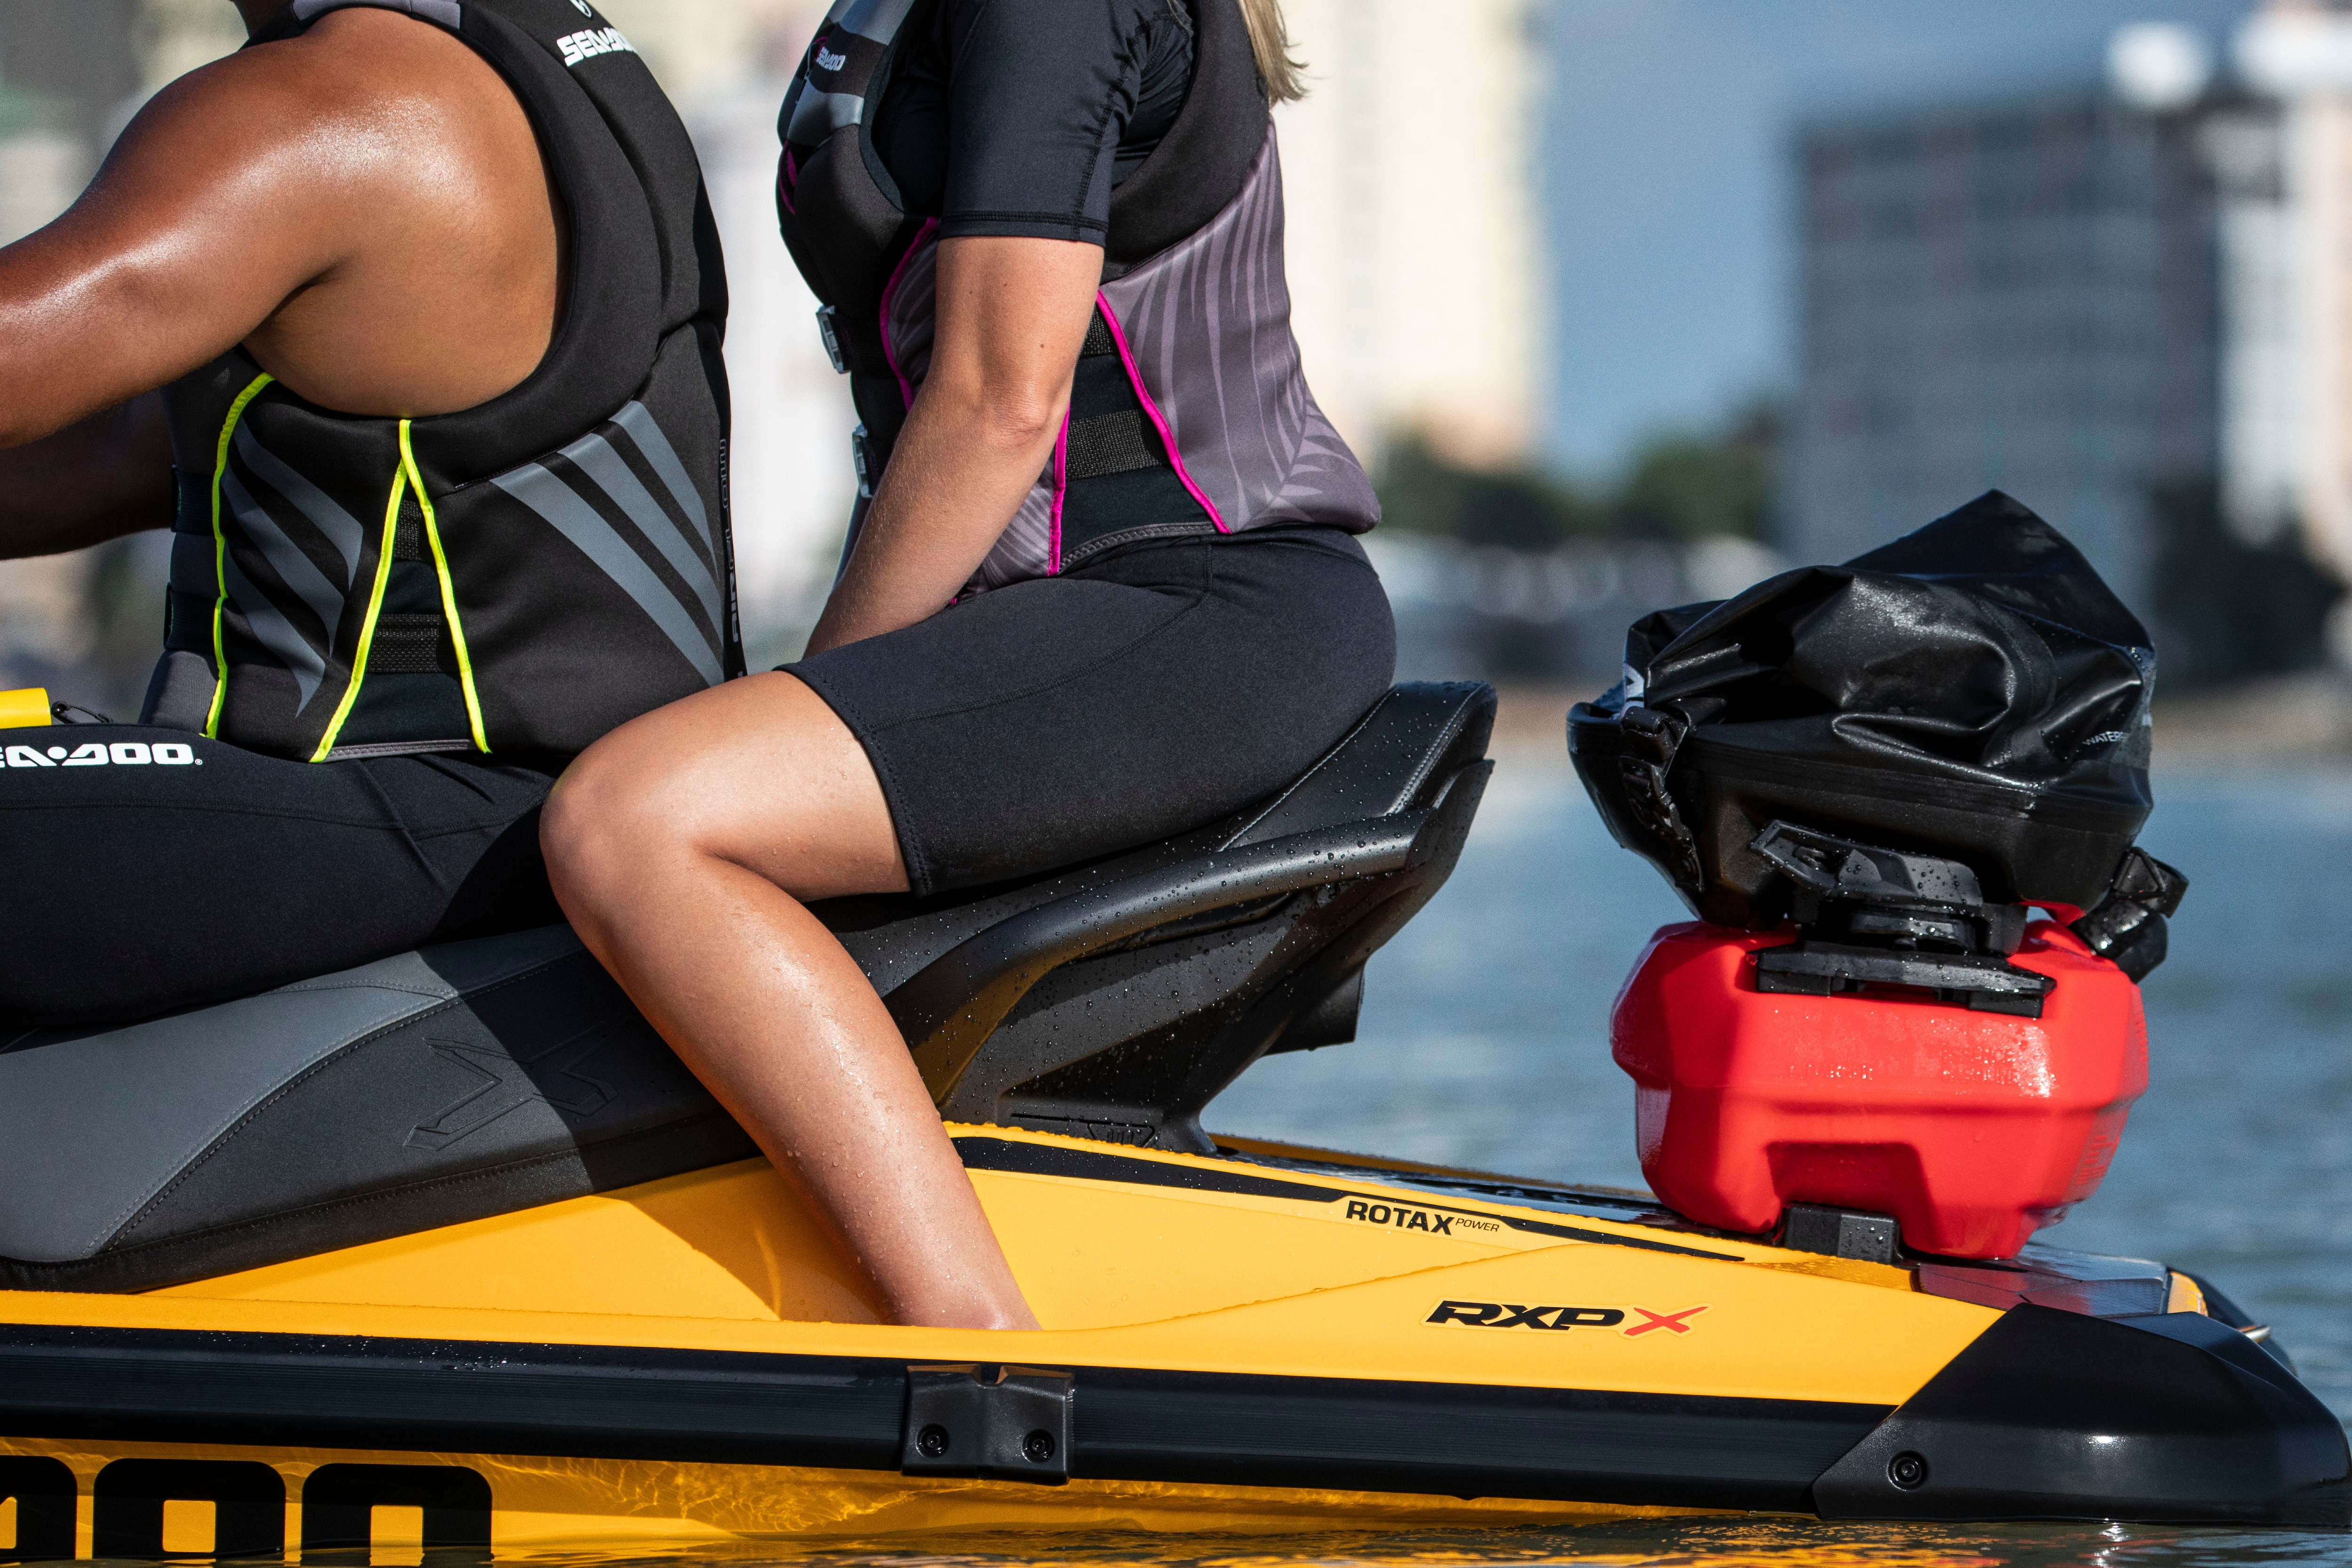 Couple on a Sea-Doo with Linq system